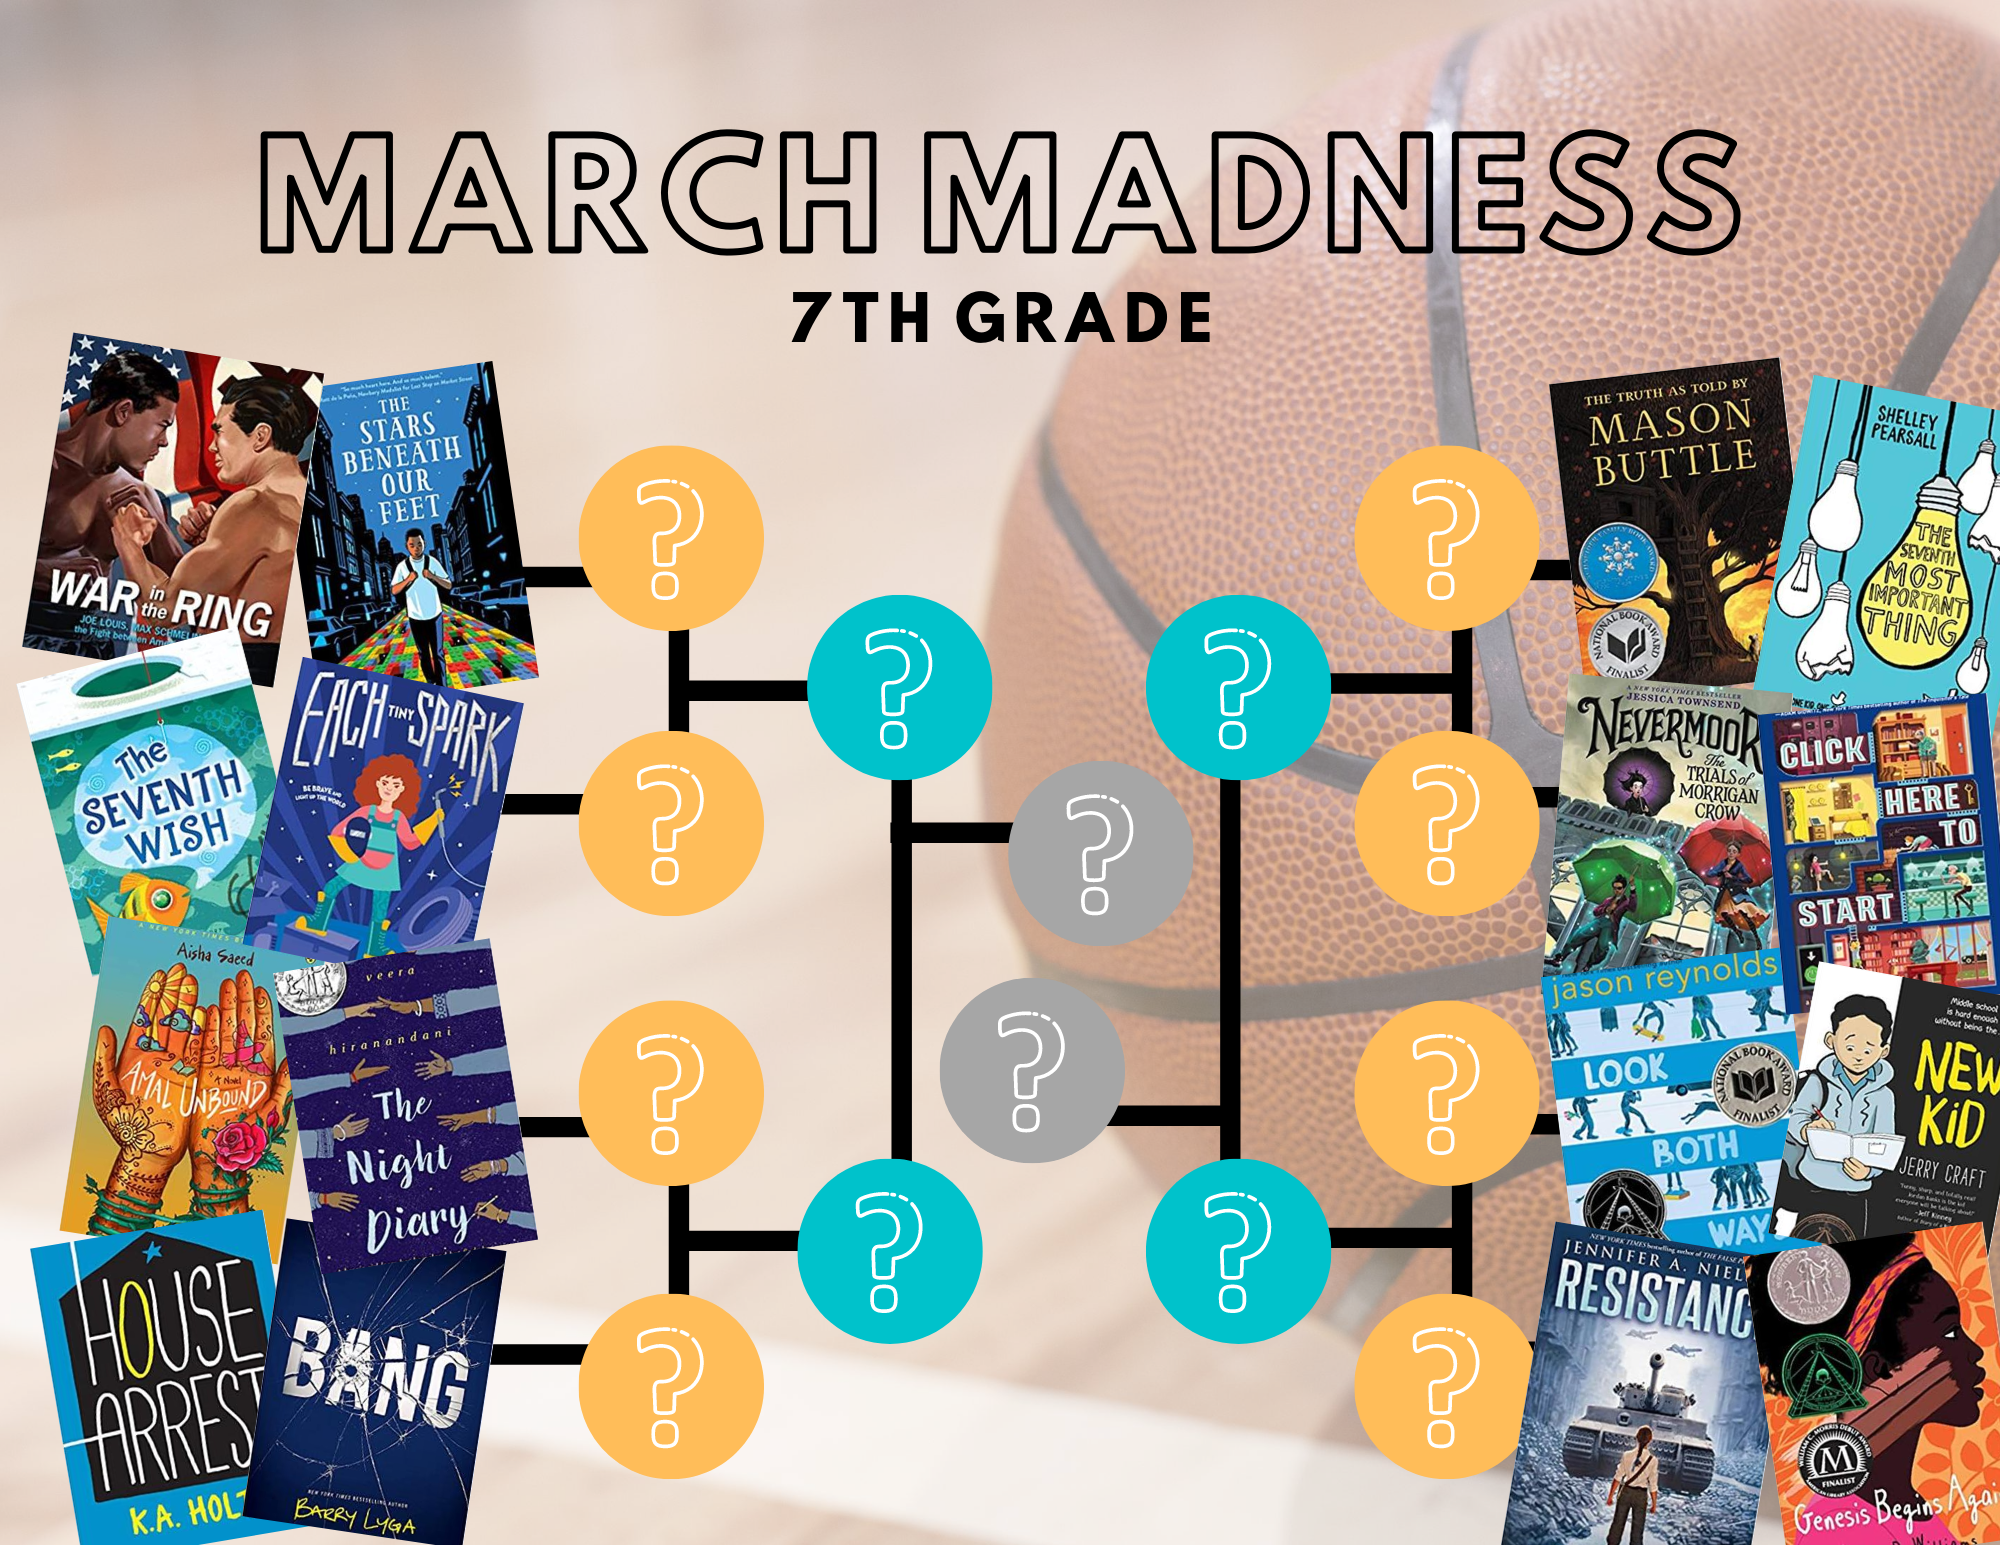 7th March Madness